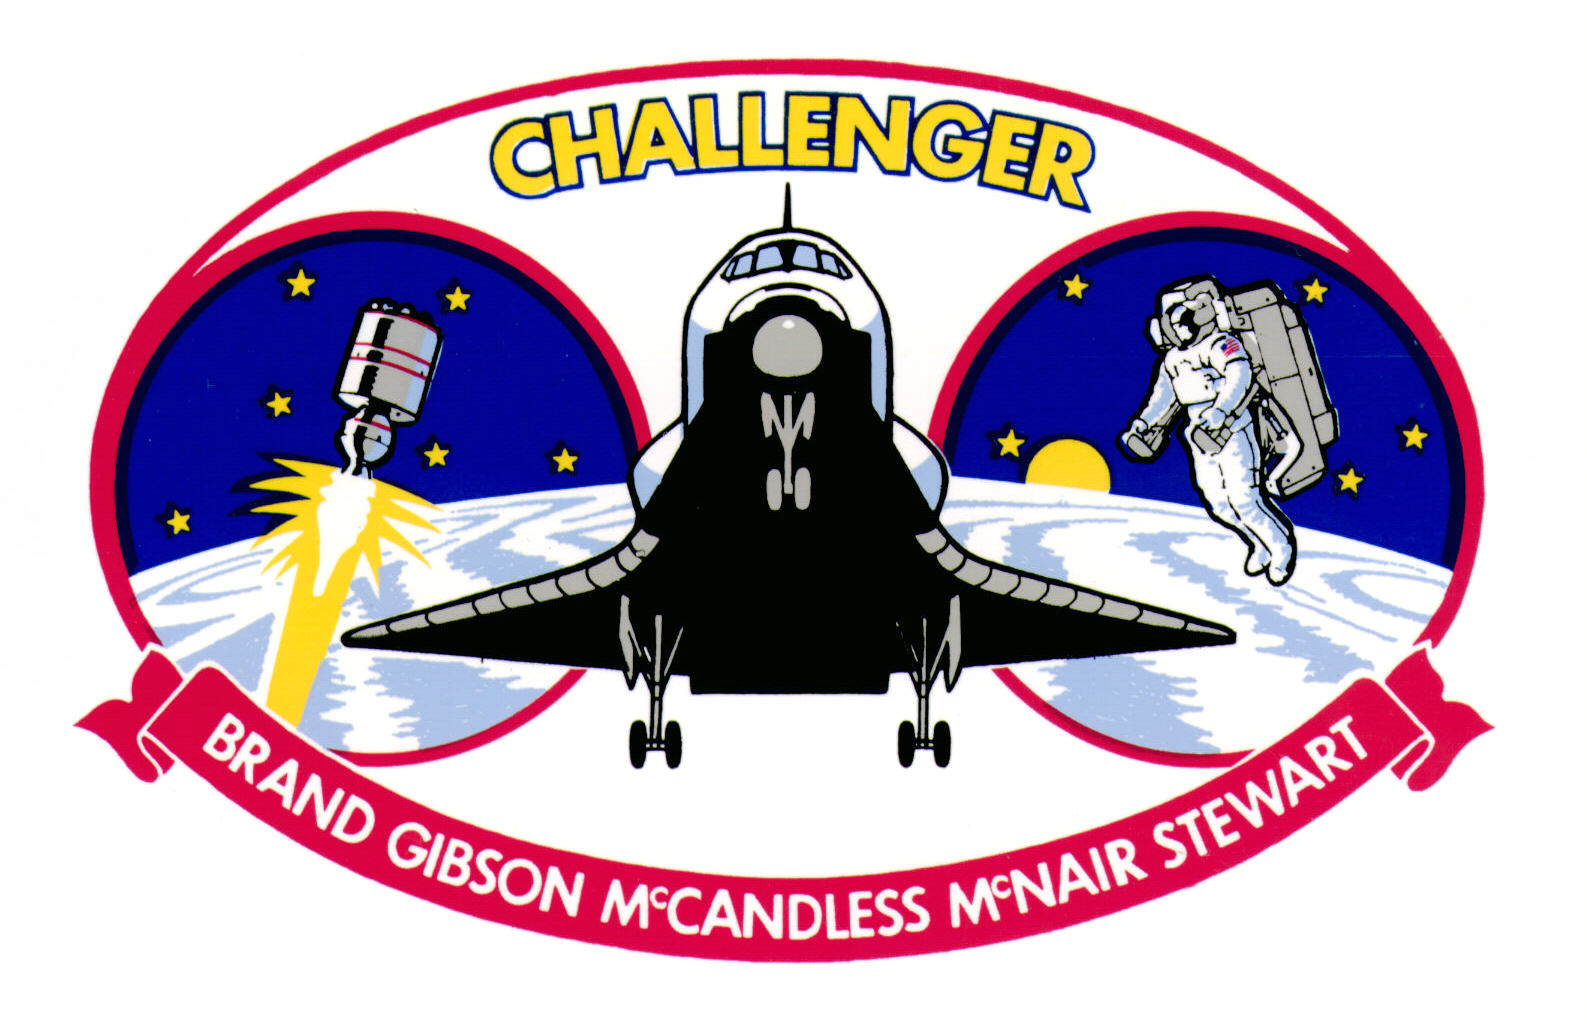 space shuttle mission badges - photo #42